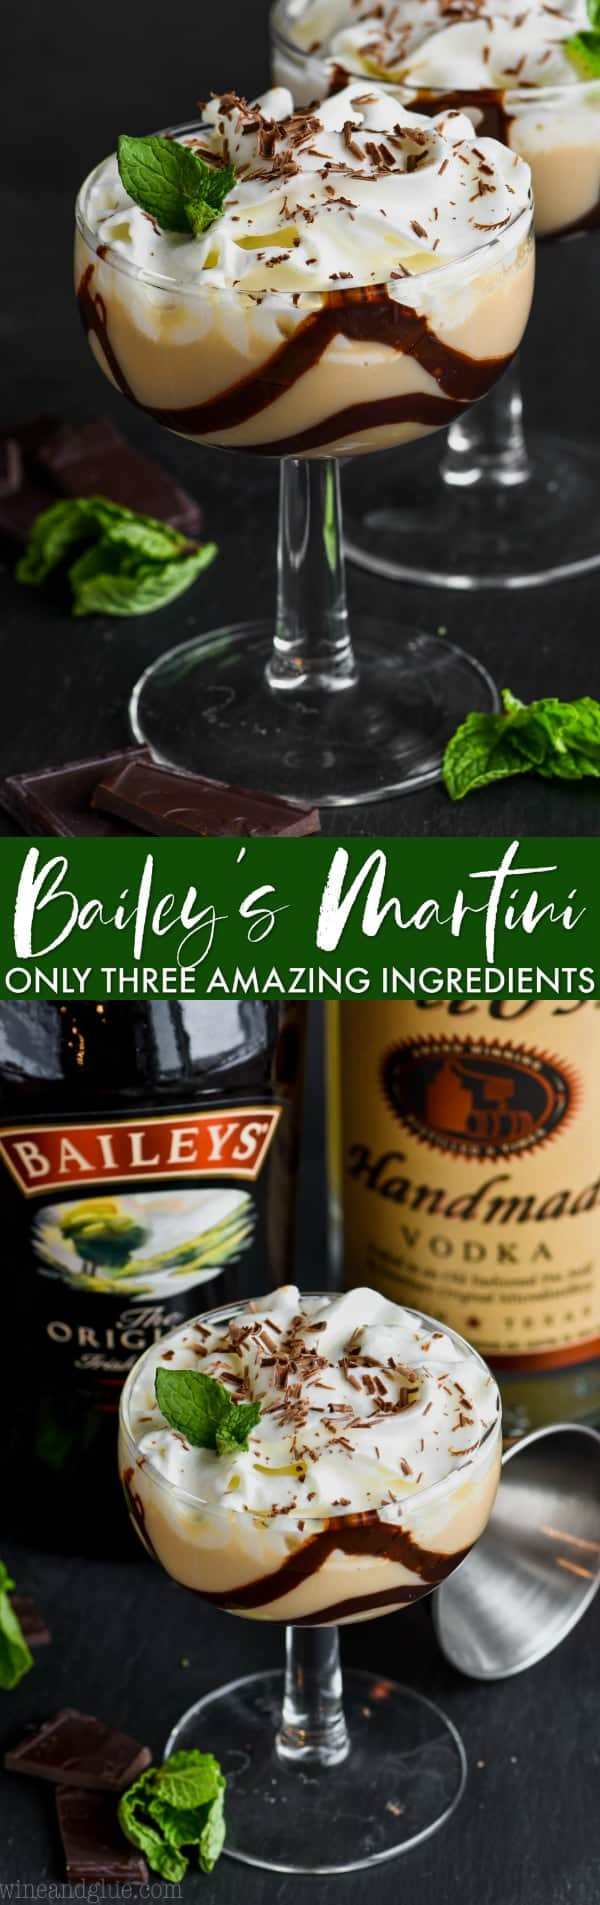 collage of baileys chocolate martini photos